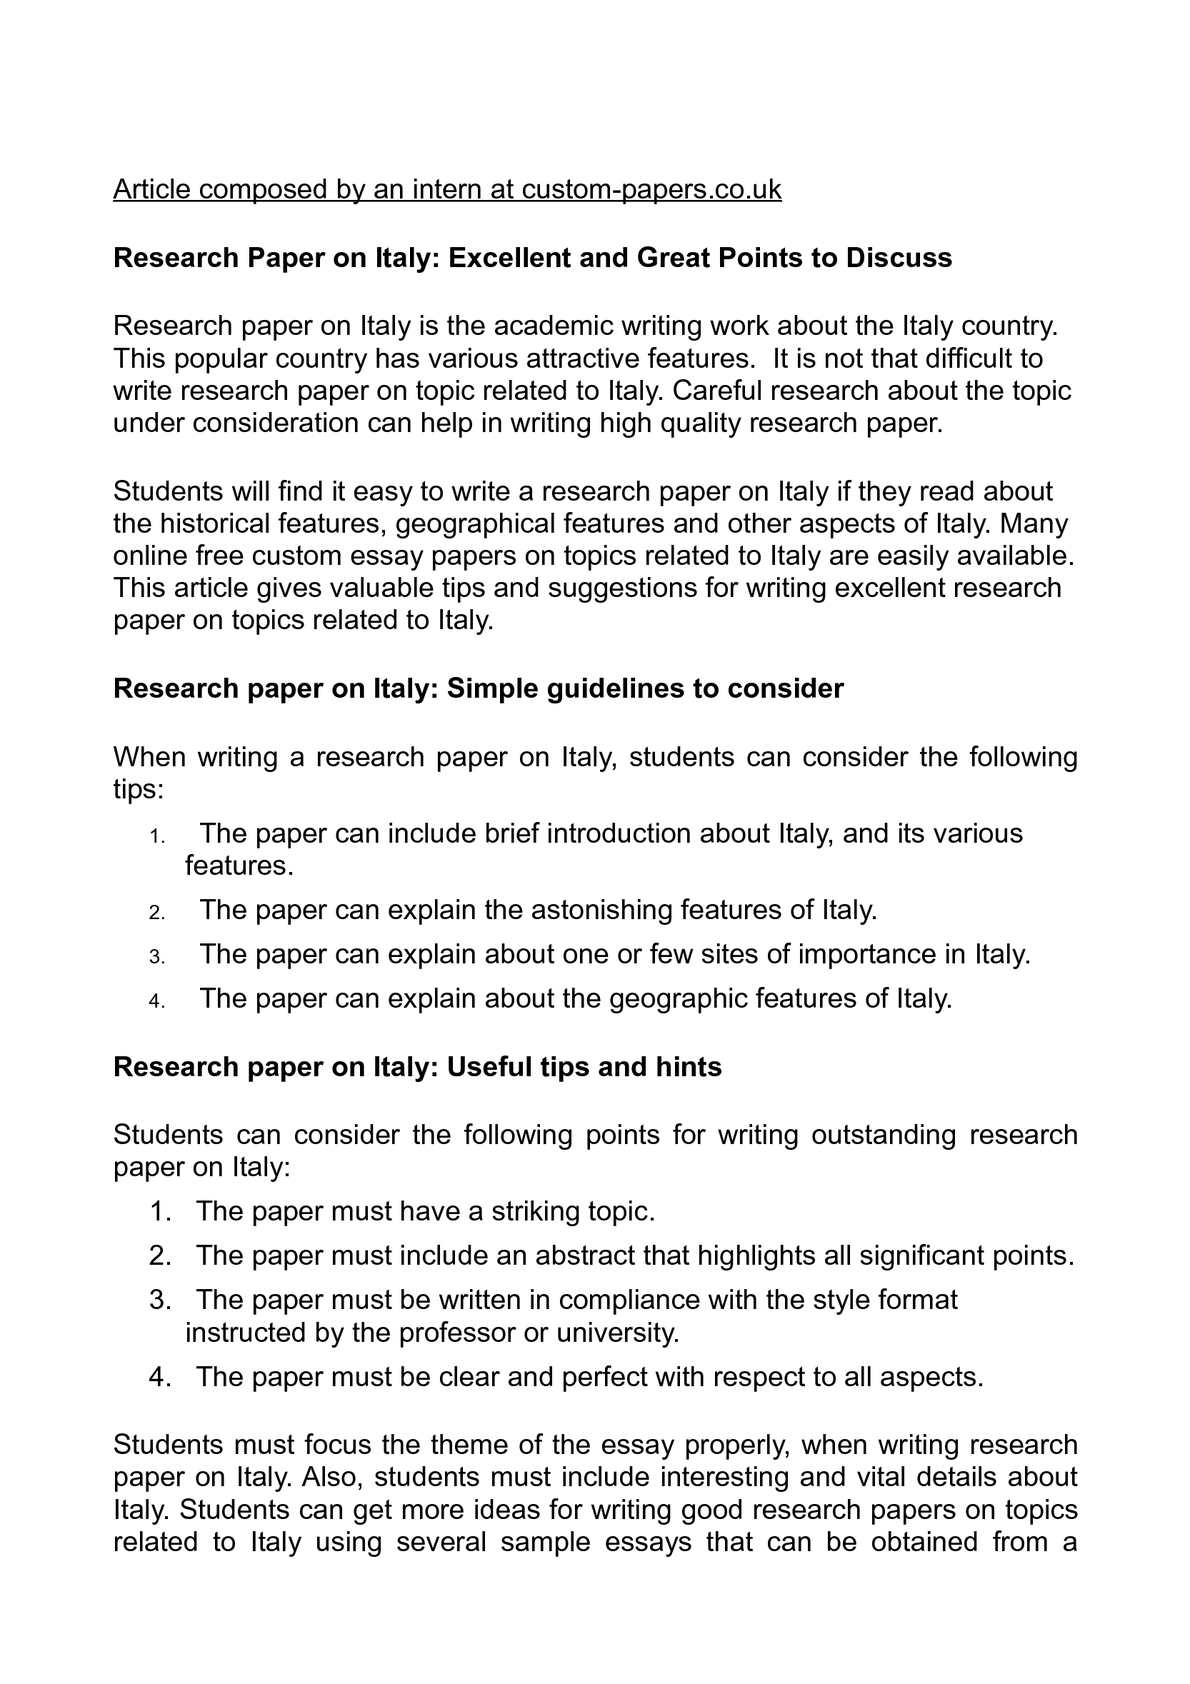 calam eacute o research paper on excellent and great points to calameacuteo research paper on excellent and great points to discuss